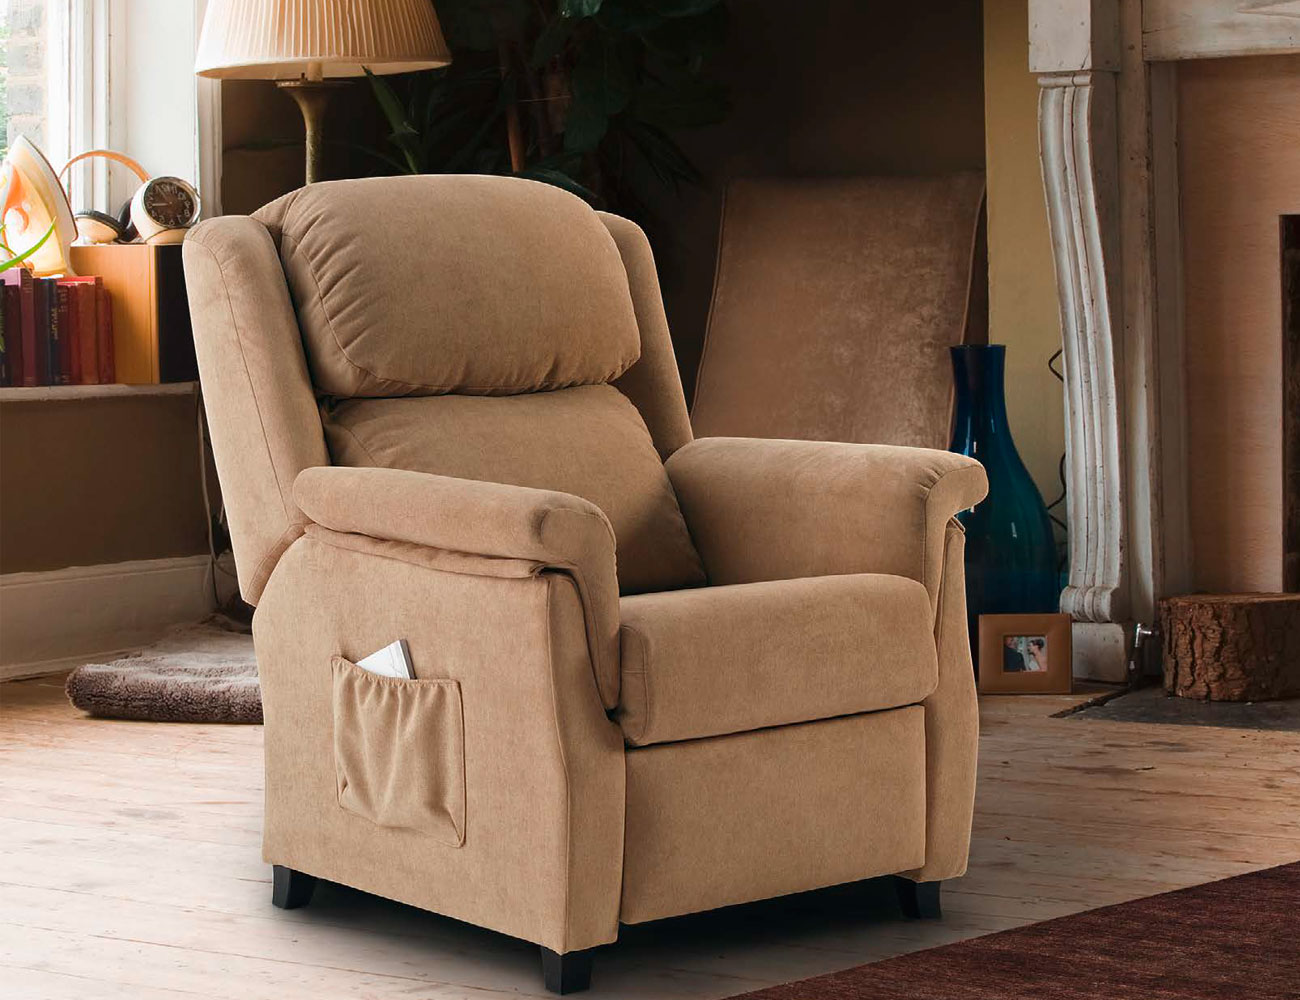 Sillon relax manual bianca 121